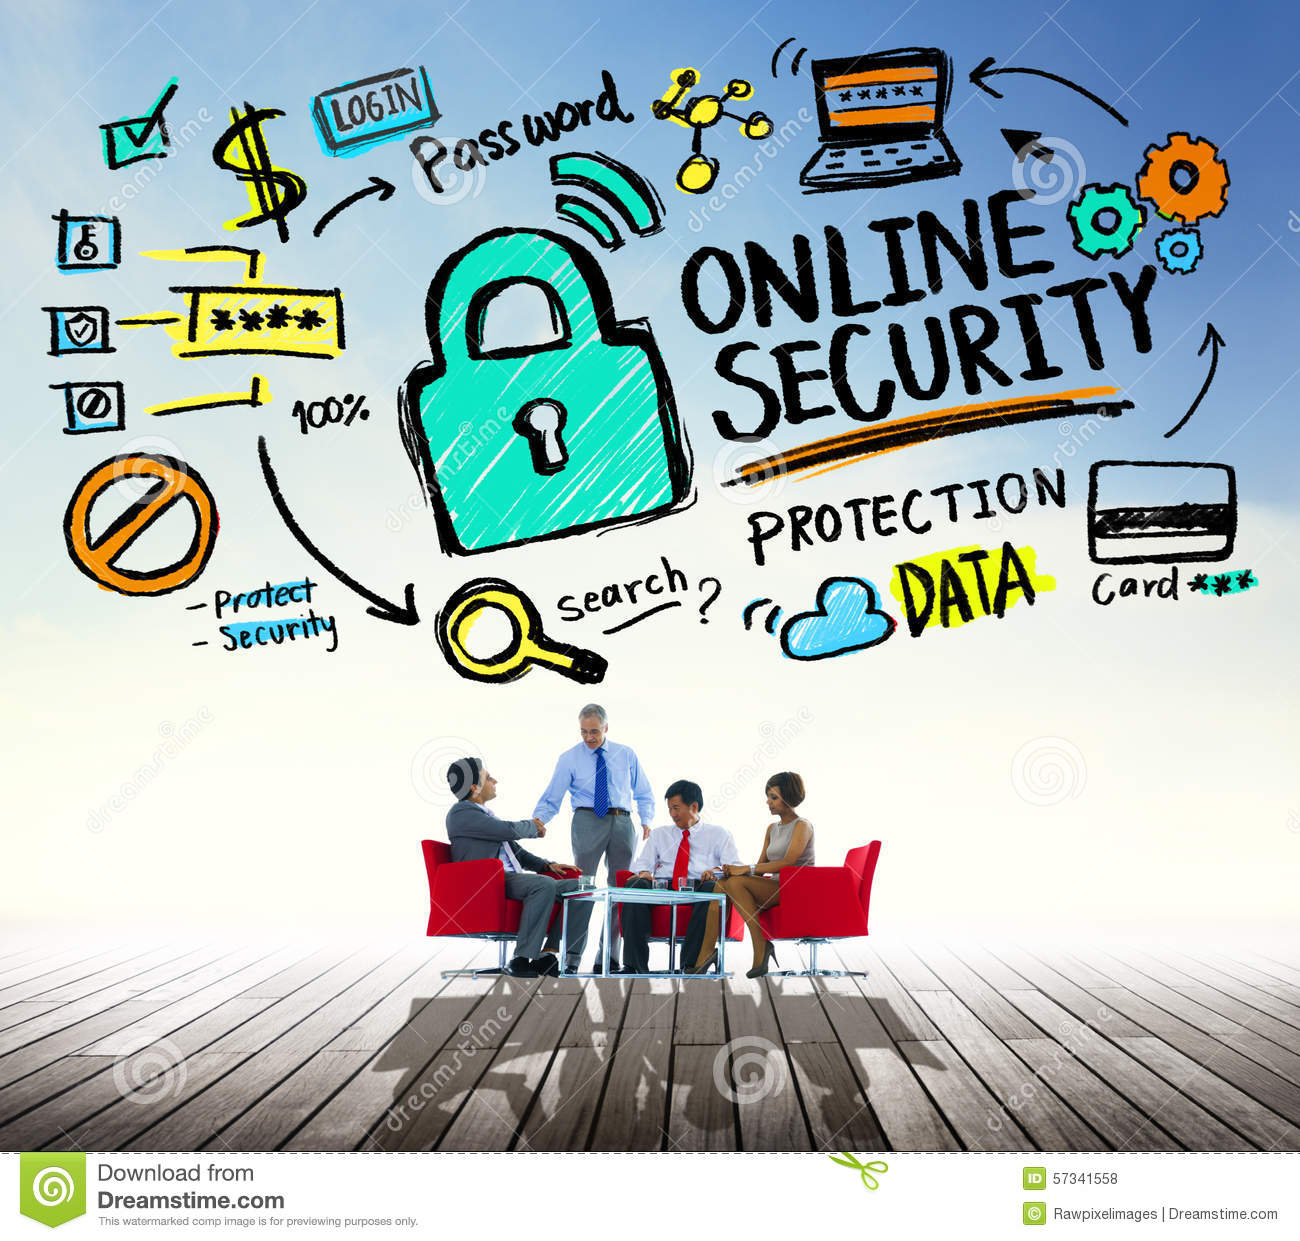 Online Security Password Information Protection Privacy